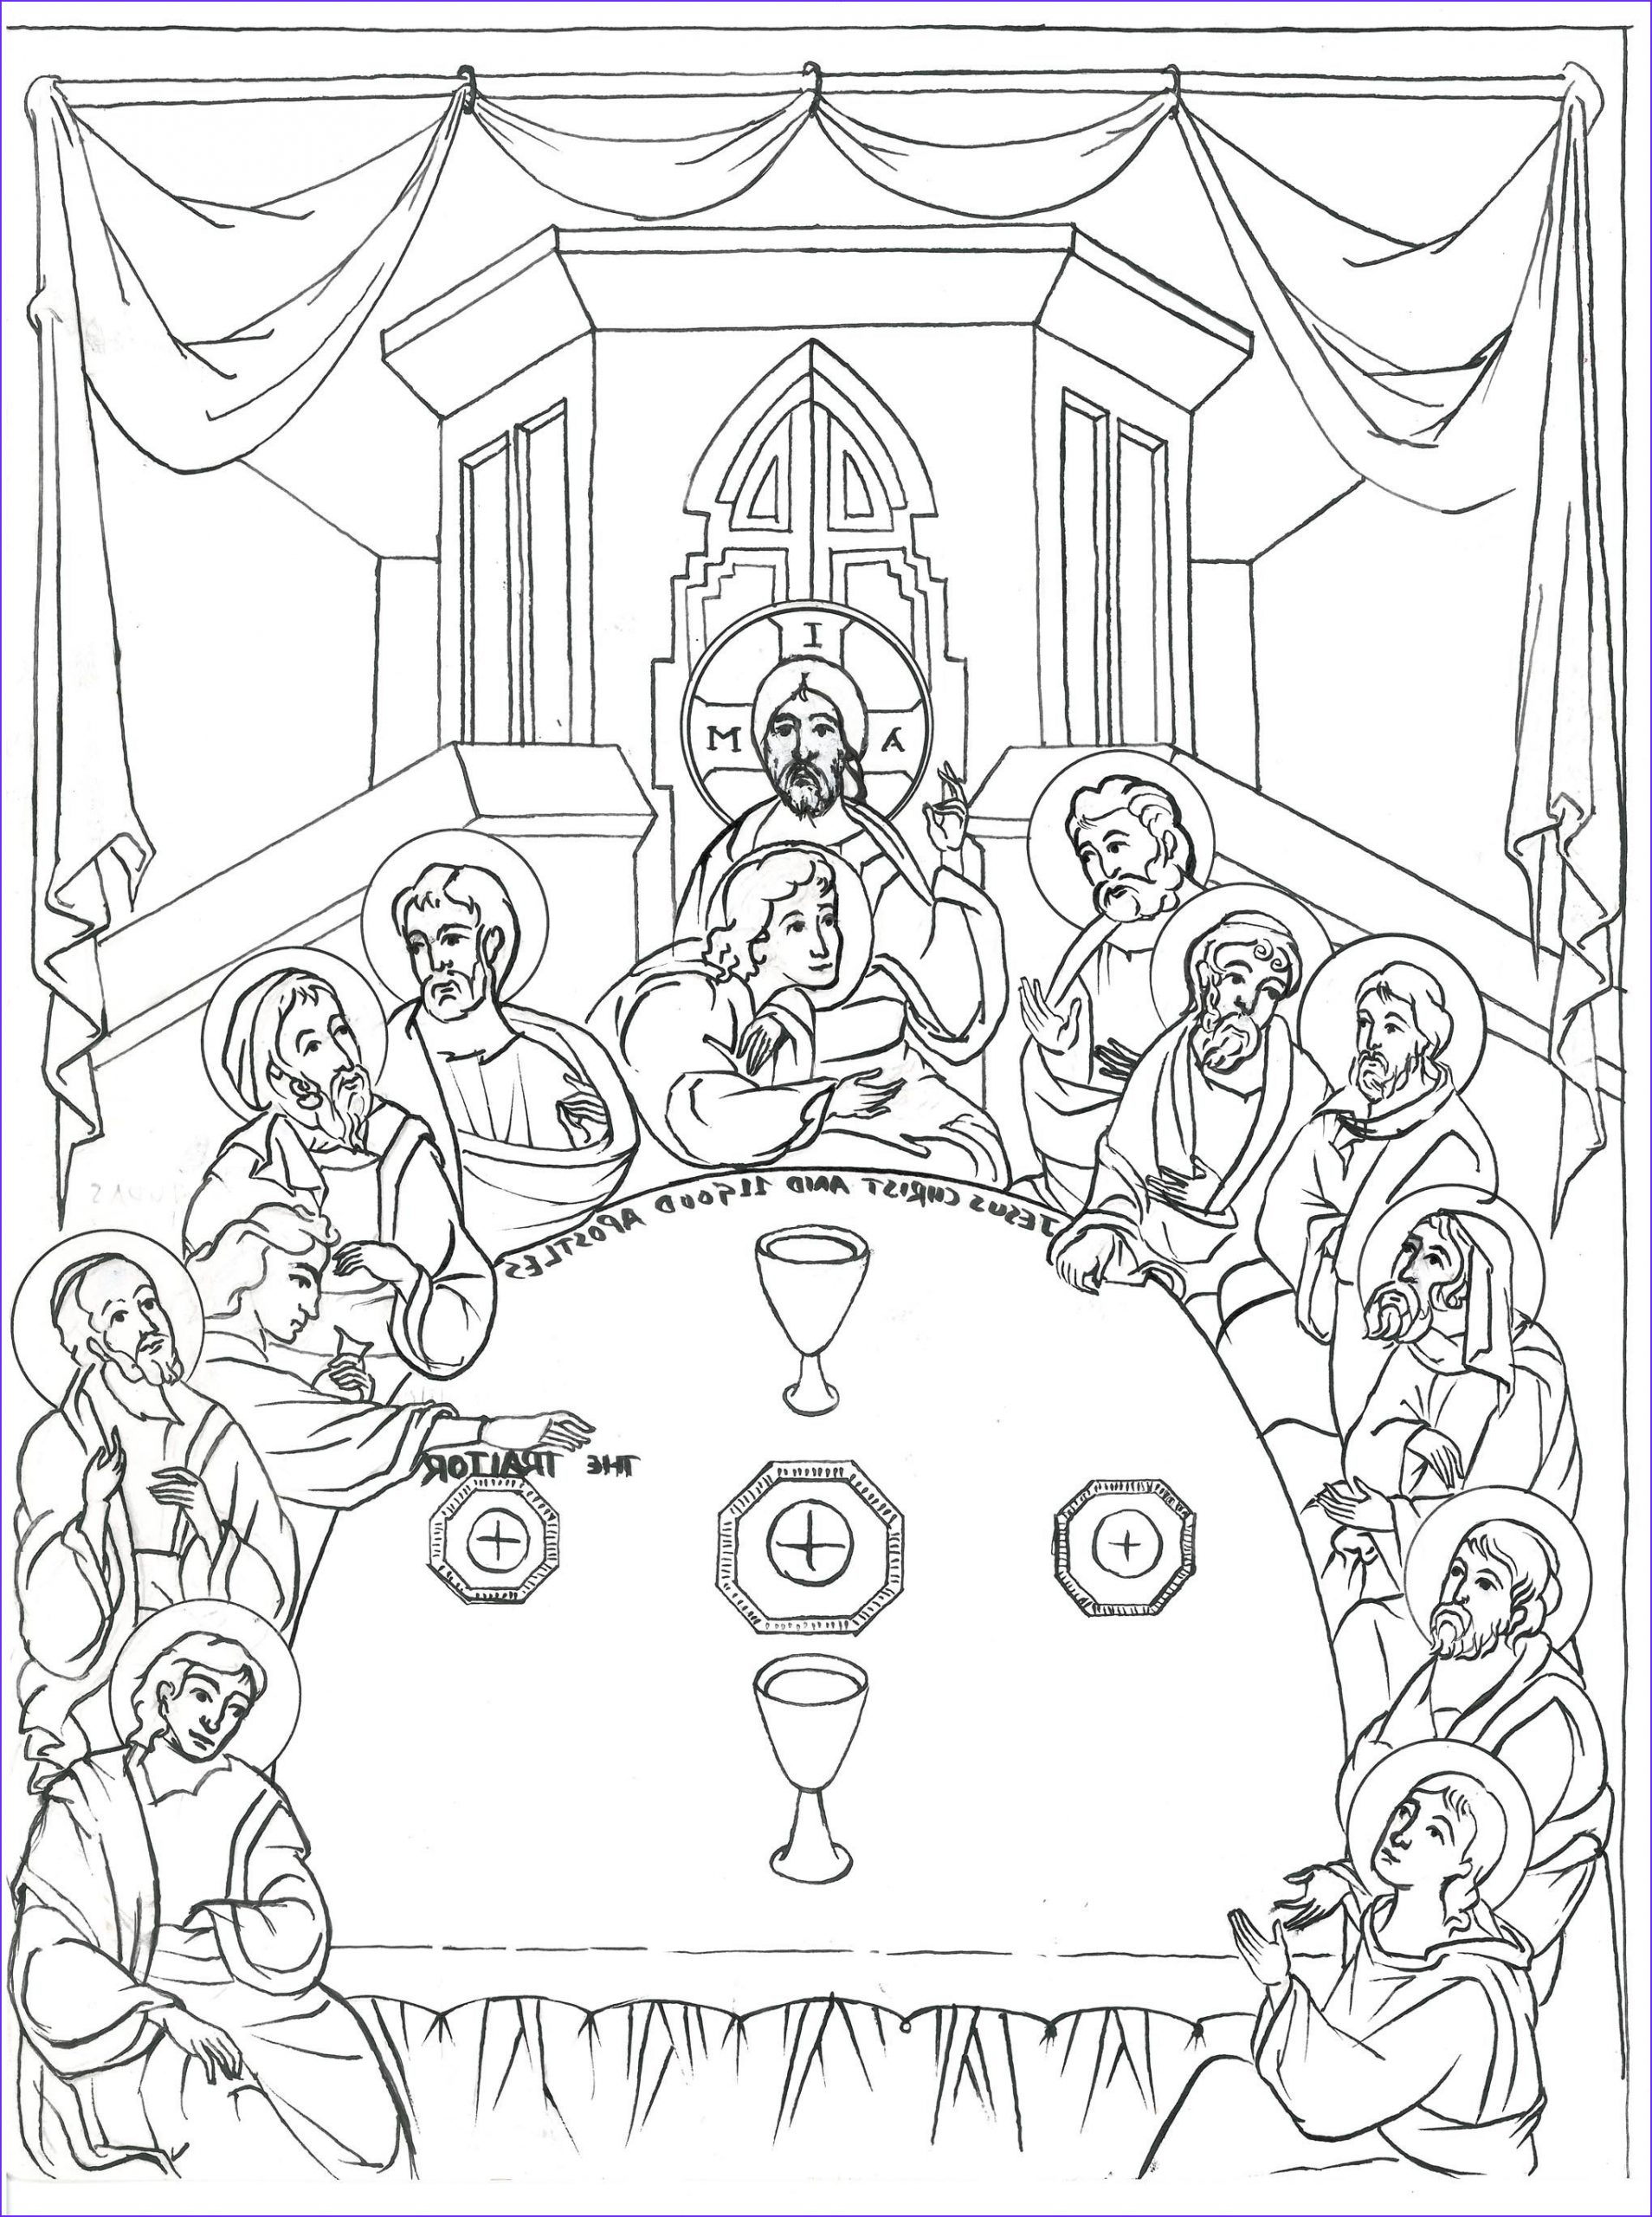 Last Supper Coloring Page Inspirational Photography Pin On Icons Black and White